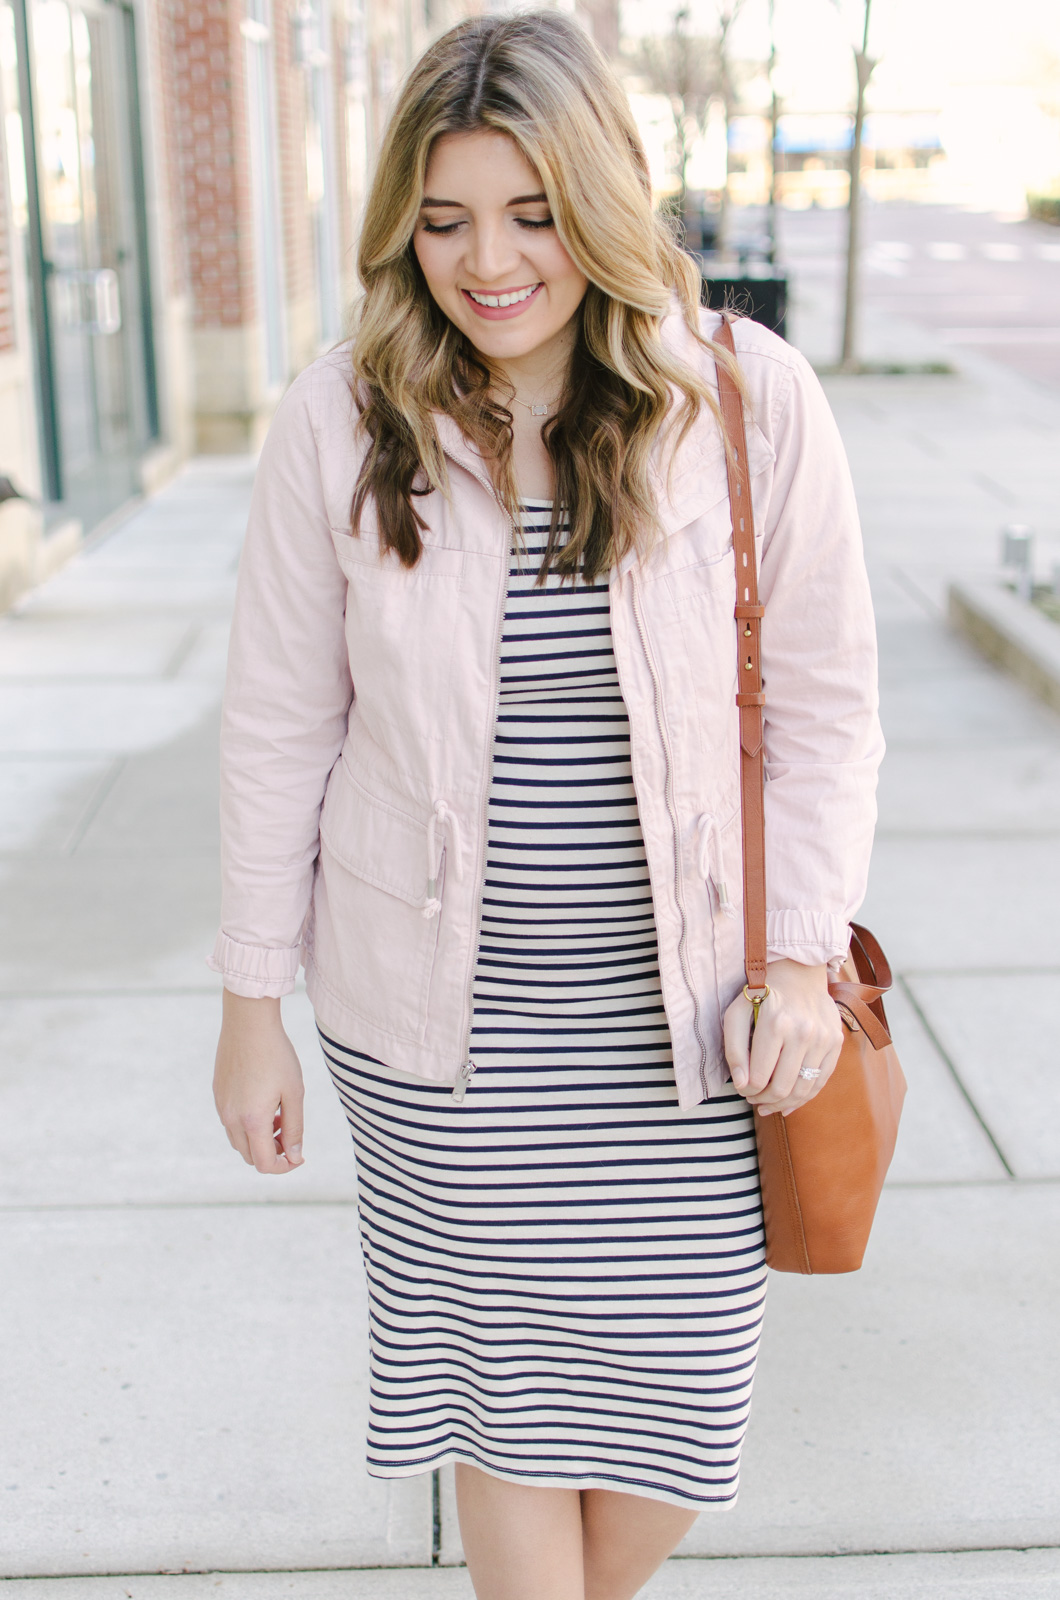 striped dress maternity outfit - spring pregnancy outfits | | Shop this look and see the other striped dress outfit at bylaurenm.com!